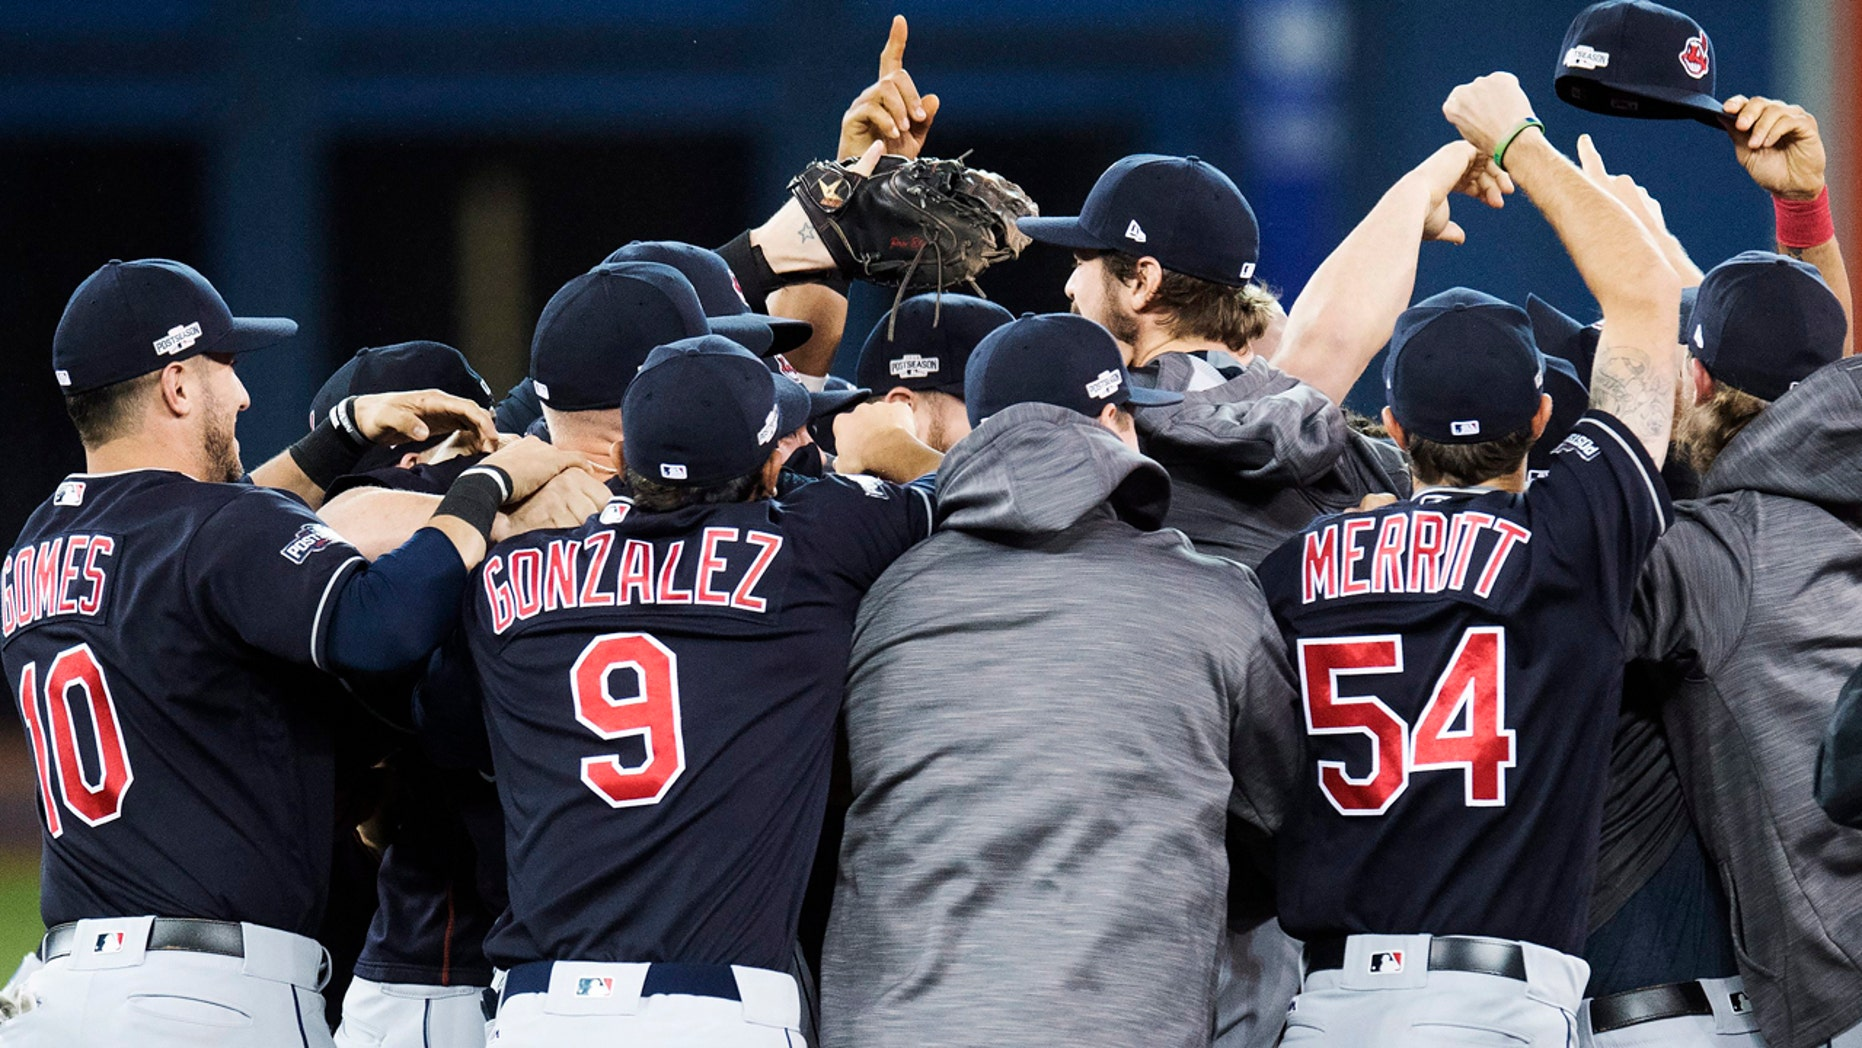 Oct. 19, 2016: The Cleveland Indians celebrate after defeating the Toronto Blue Jays 3-0 in Game 5 of the American League Championship Series in Toronto